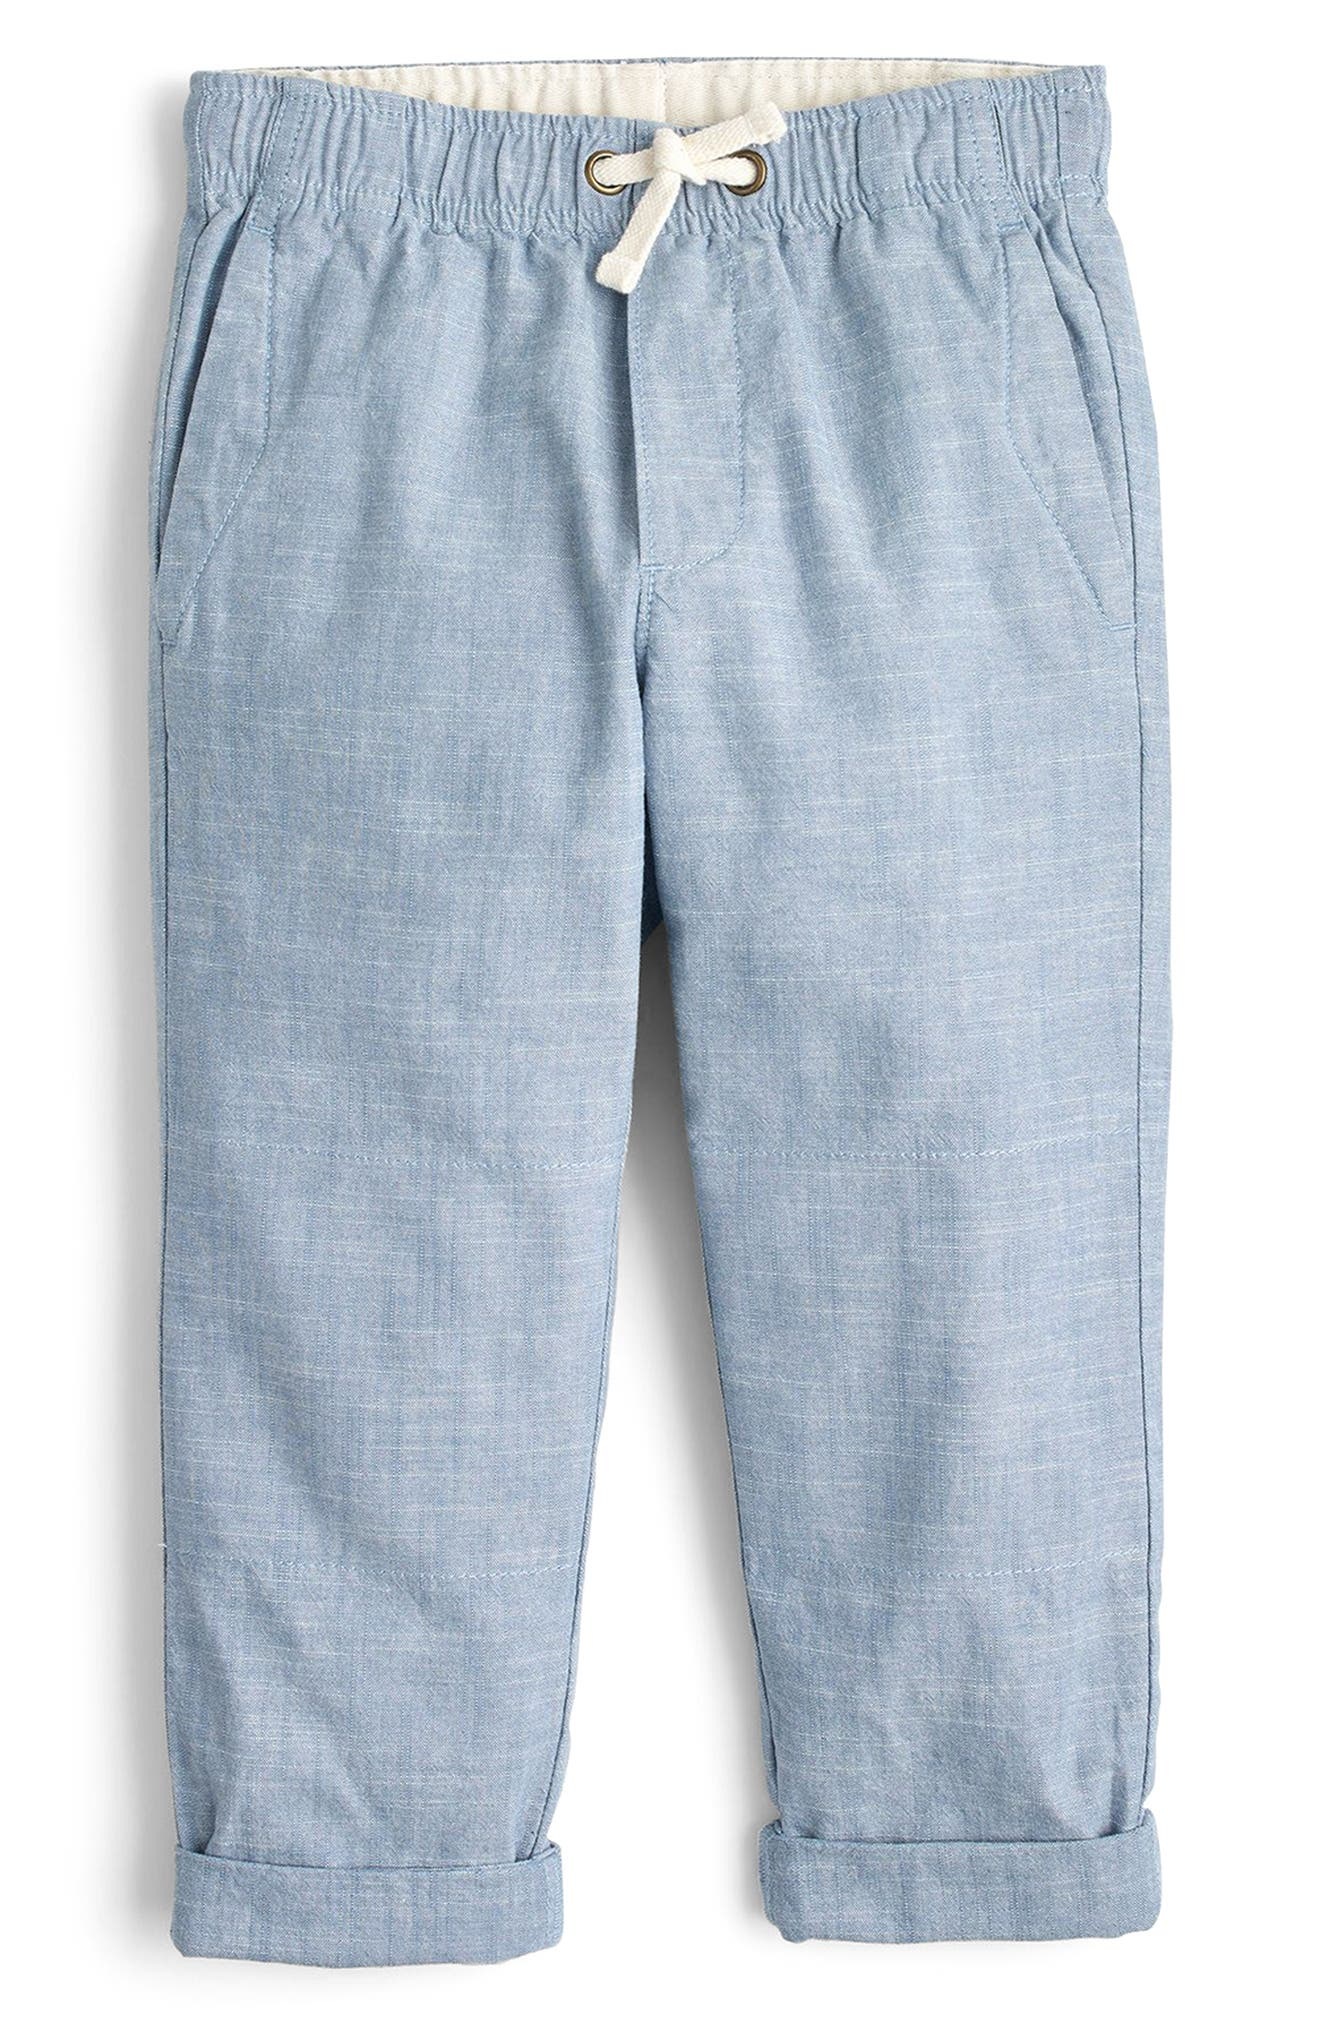 Chambray Reinforced Knee Pull-On Pants,                             Main thumbnail 1, color,                             Lakeview